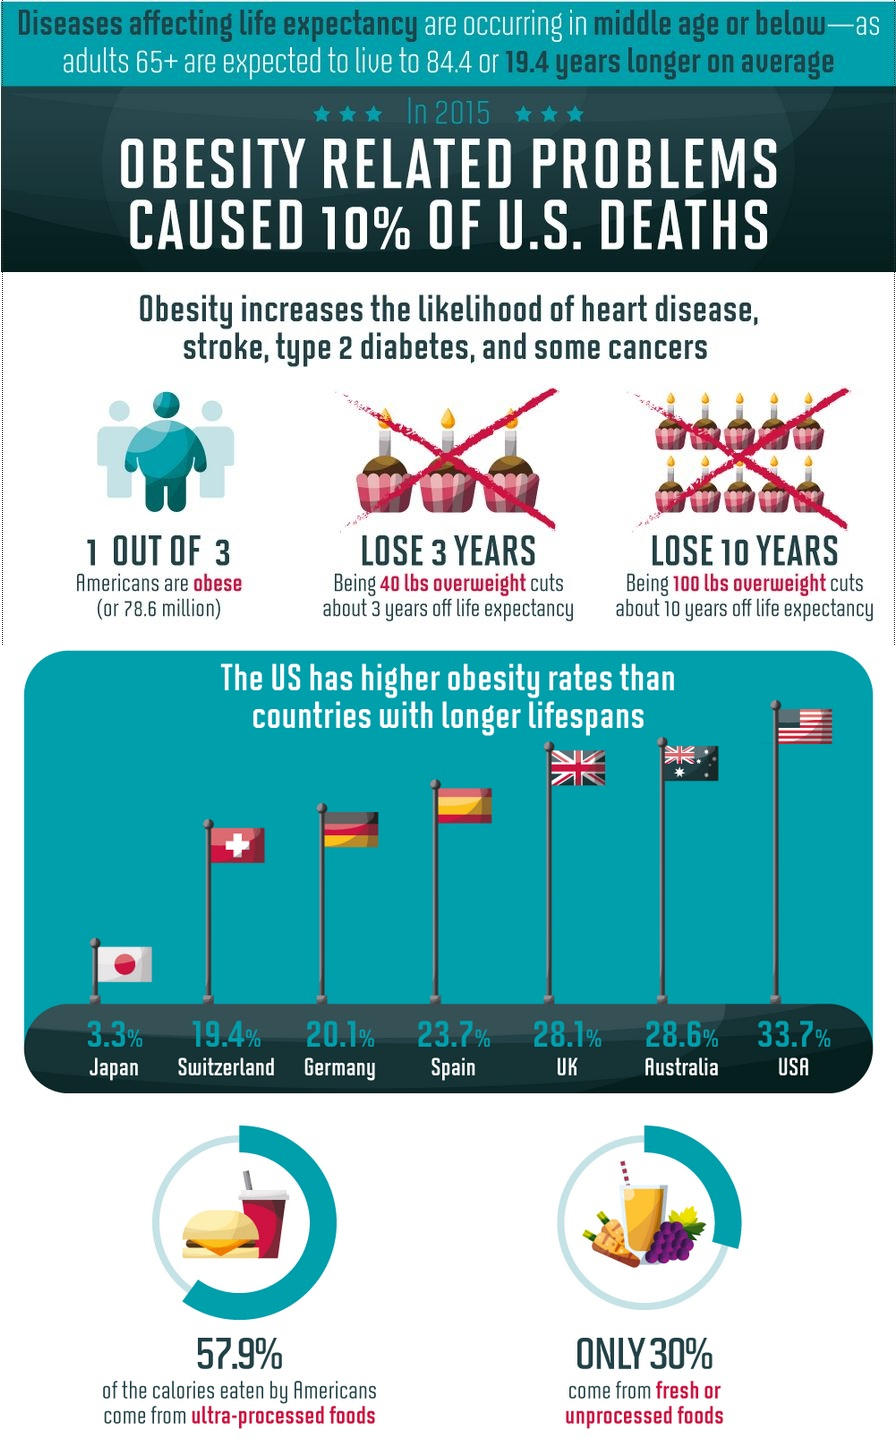 Obesity Related Problems